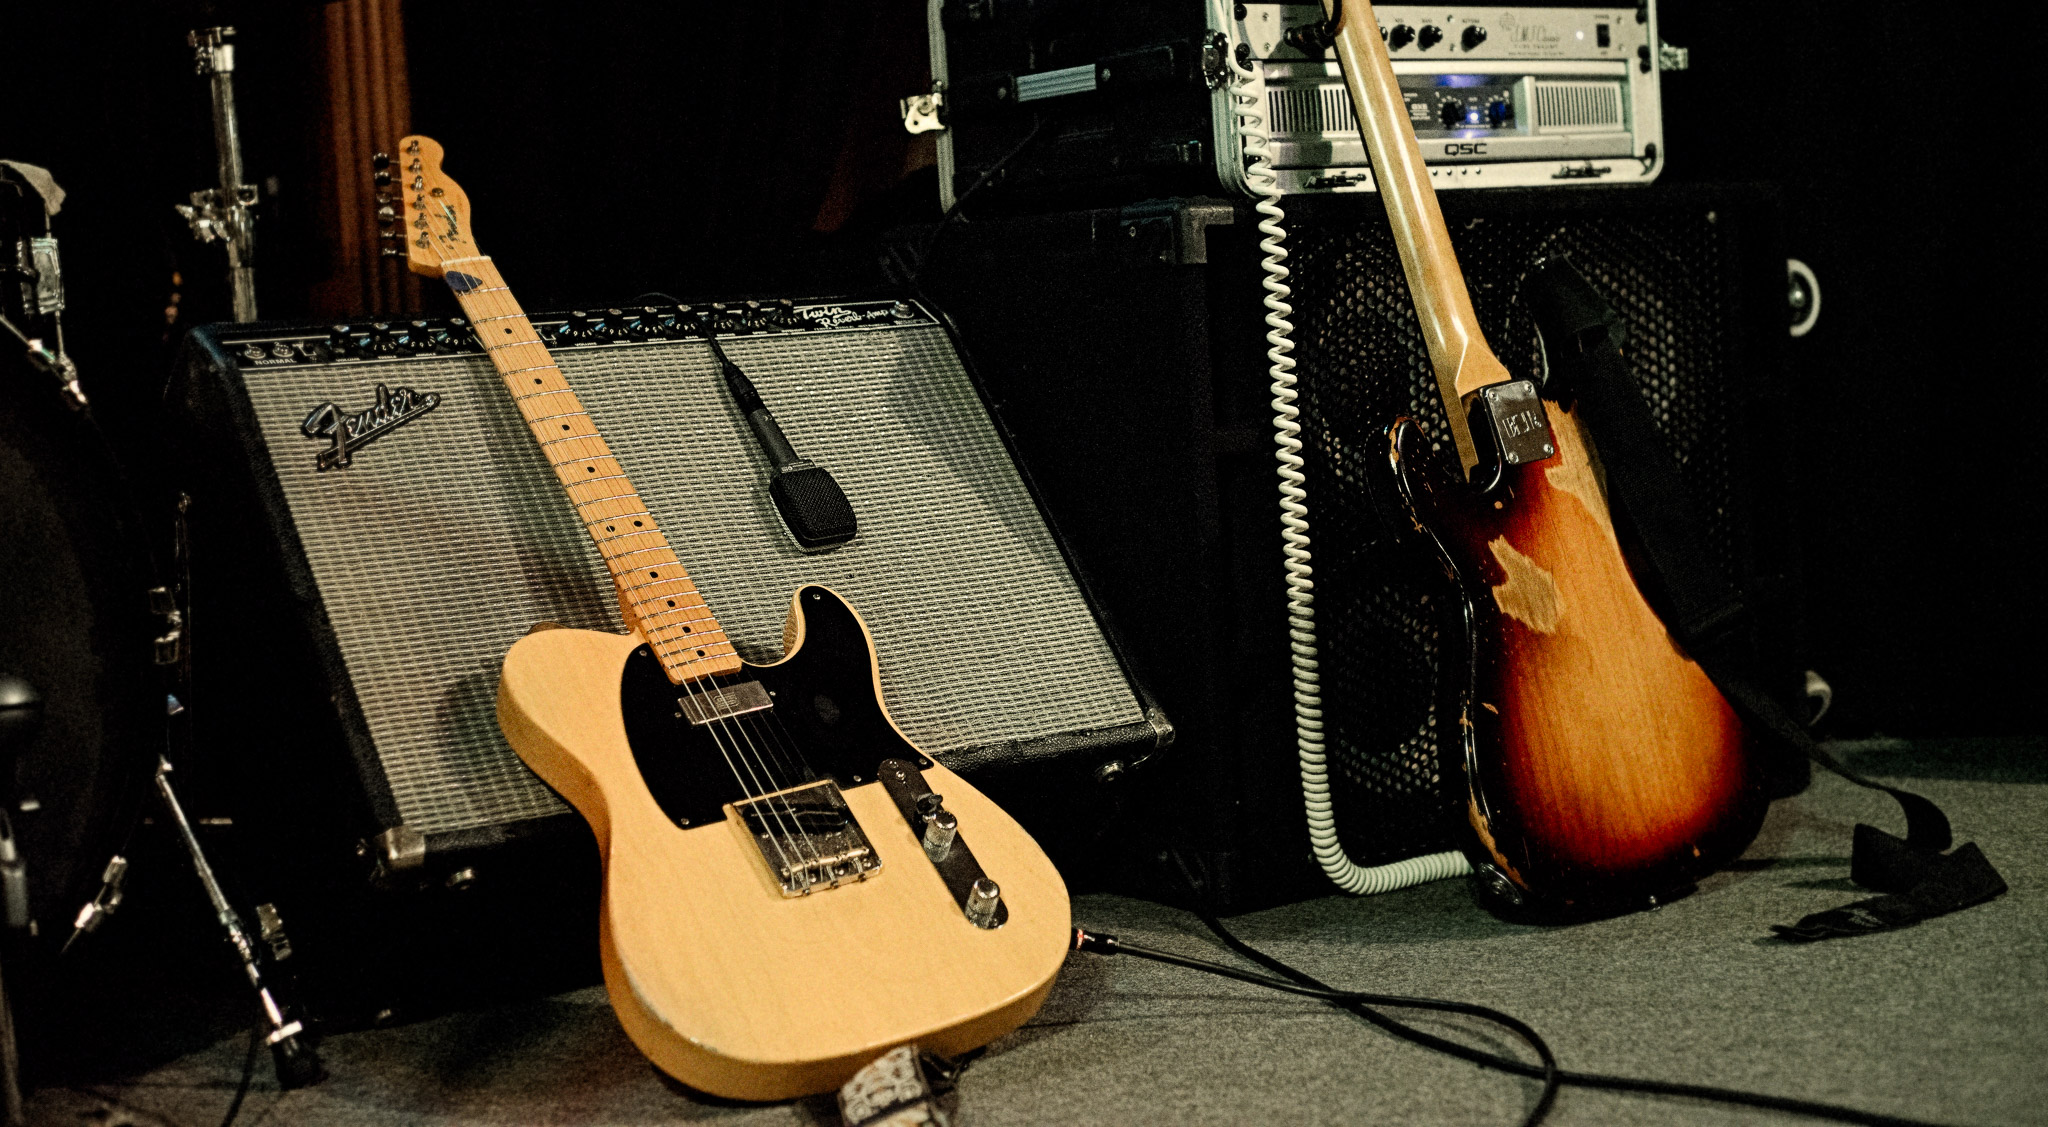 A sight to warm the heart of any guitarist - a Telecaster into a Fender Twin